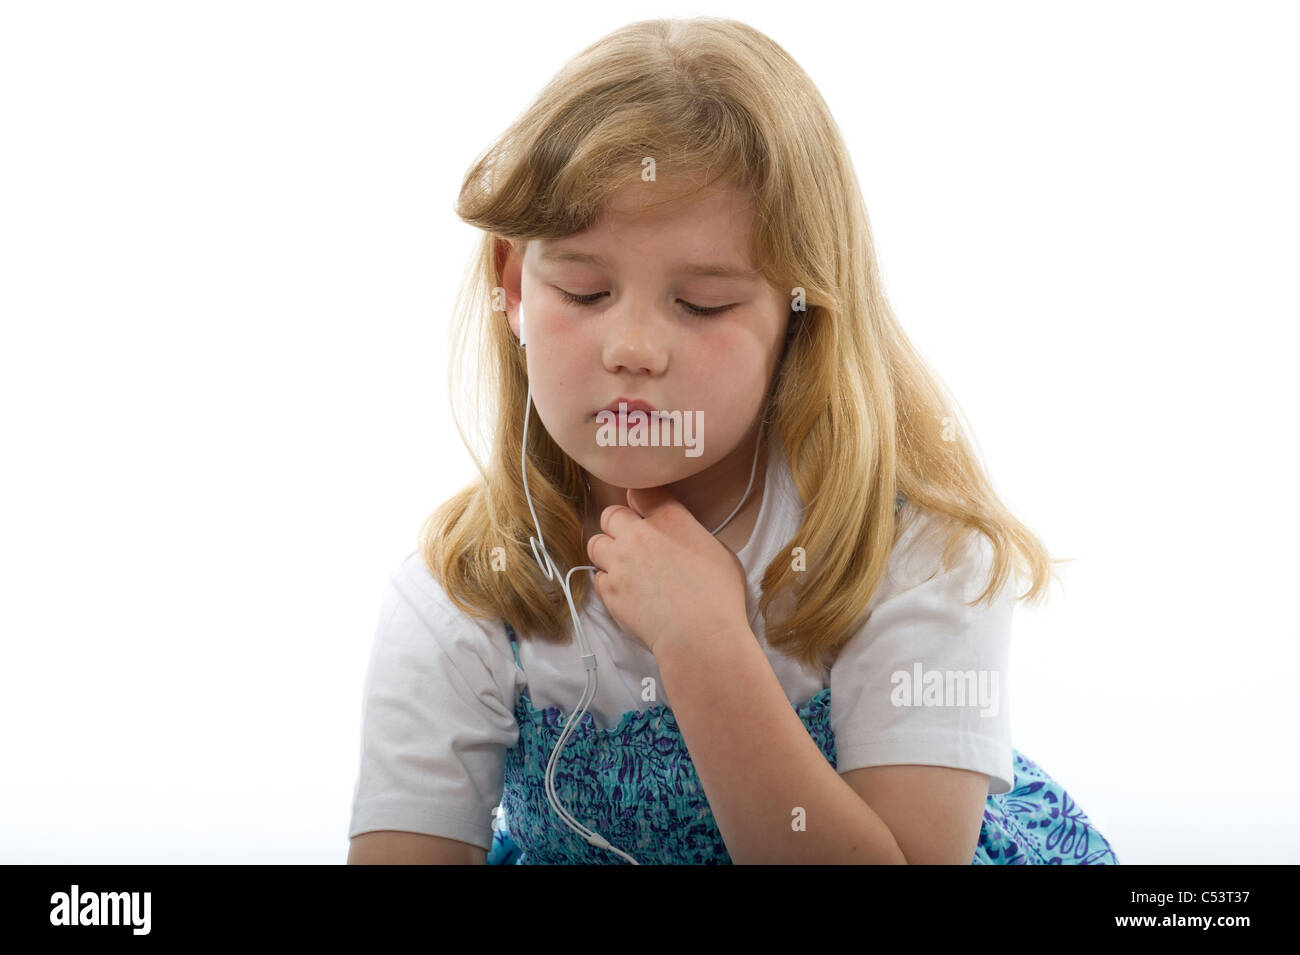 A young girl looking thoughtful or sad while listening to